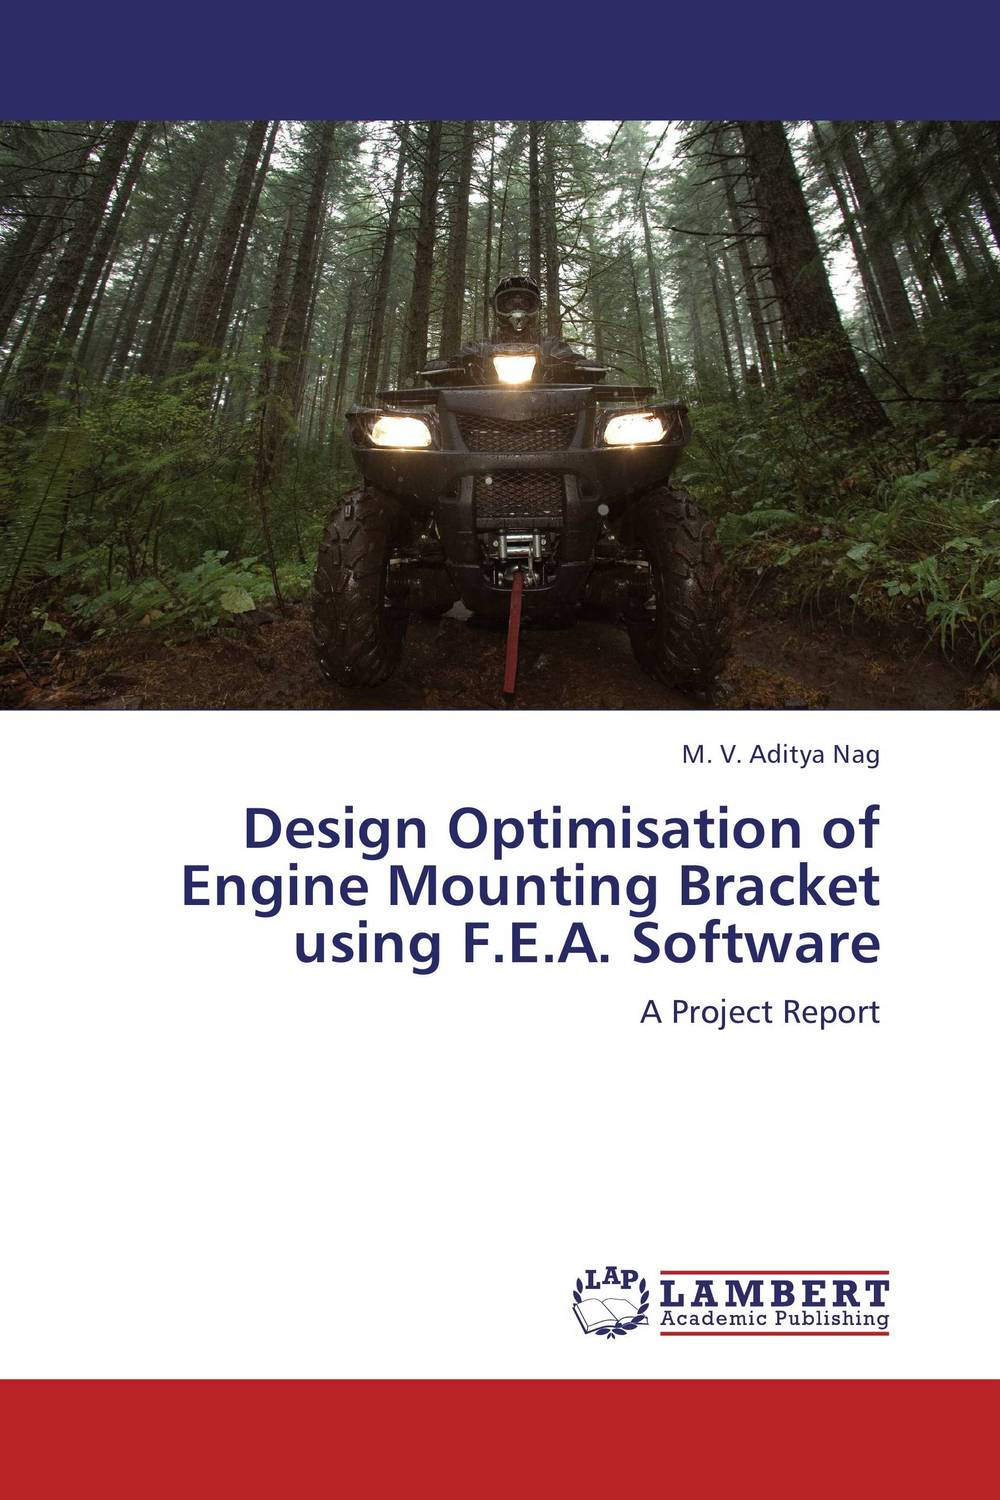 Design Optimisation of Engine Mounting Bracket using F.E.A. Software vinod kumar adigopula rakesh kumar and sunny deol guzzarlapudi overlay design of low volume road using light weight deflectometer